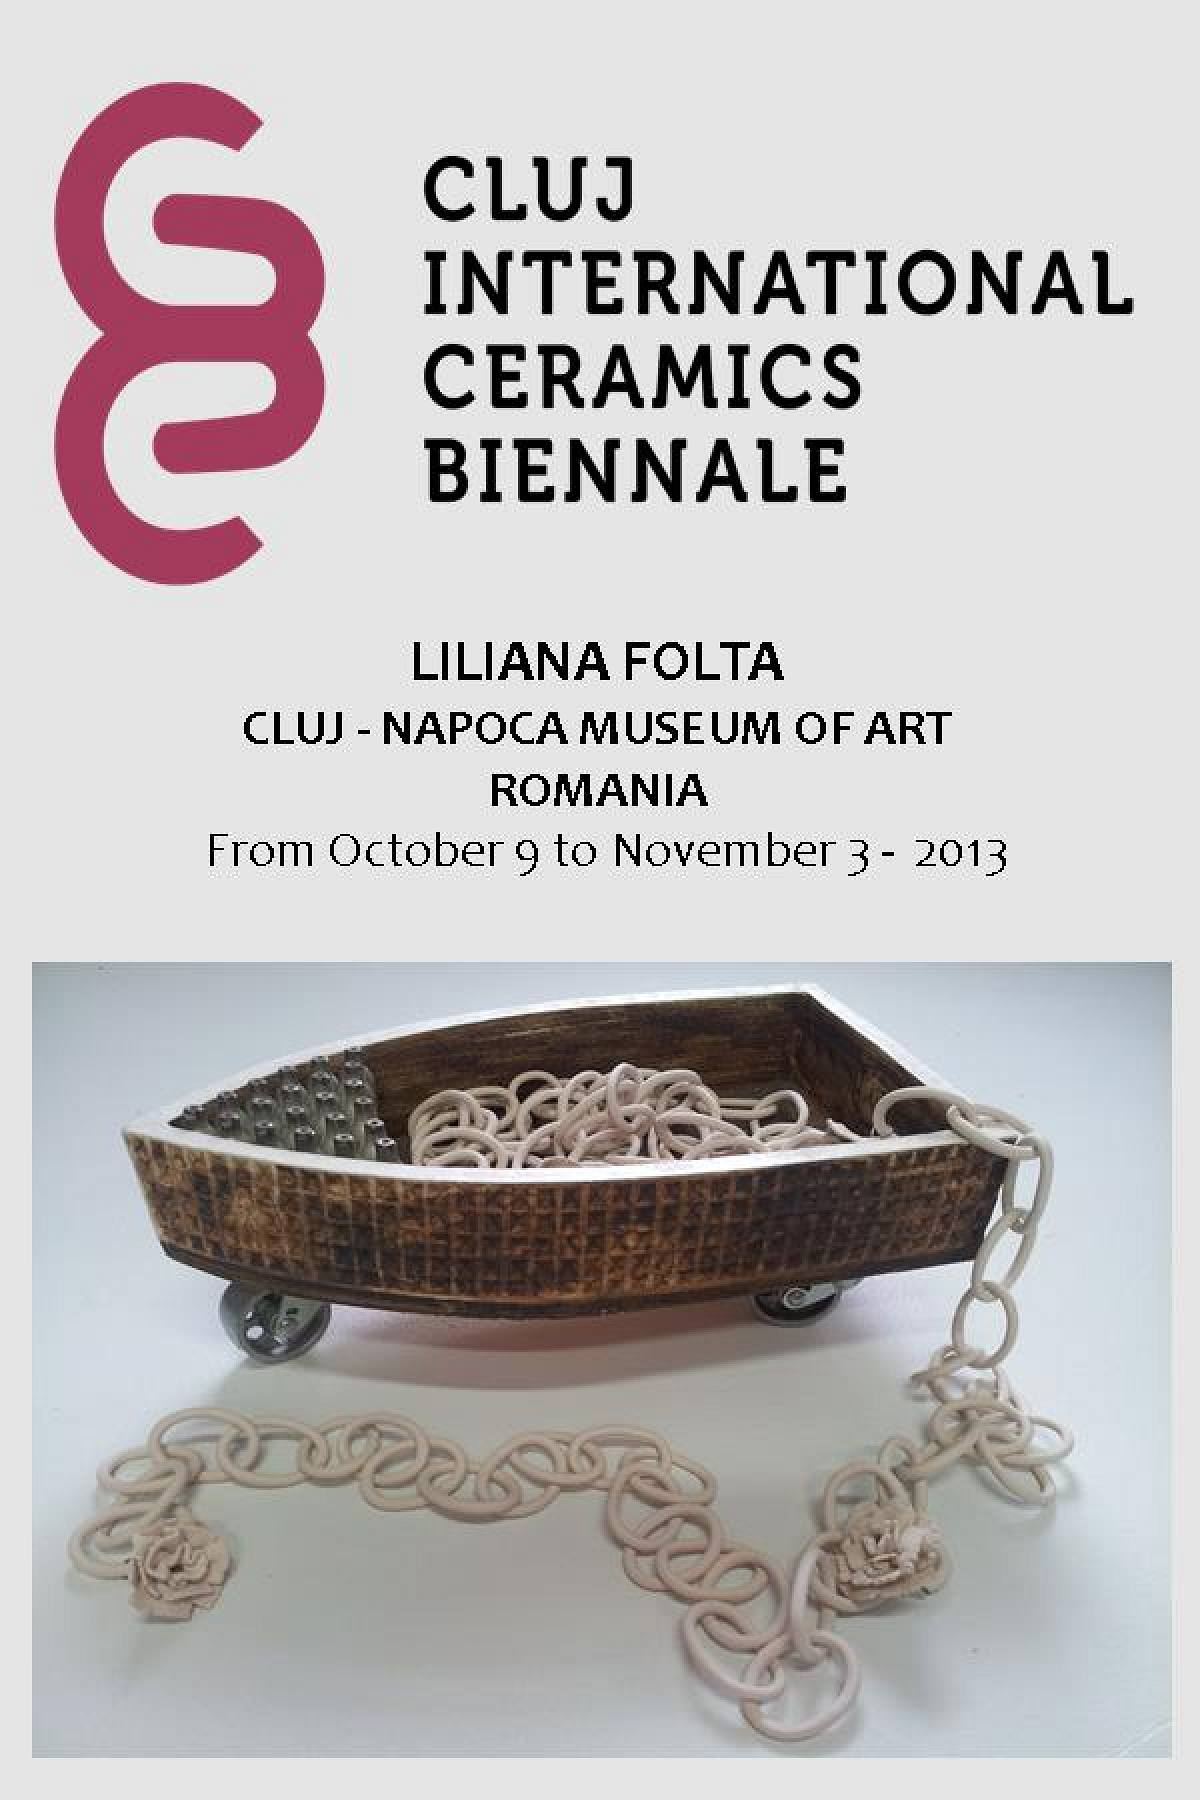 Cluj - Napoca International Ceramics Biennale 2013 flyer